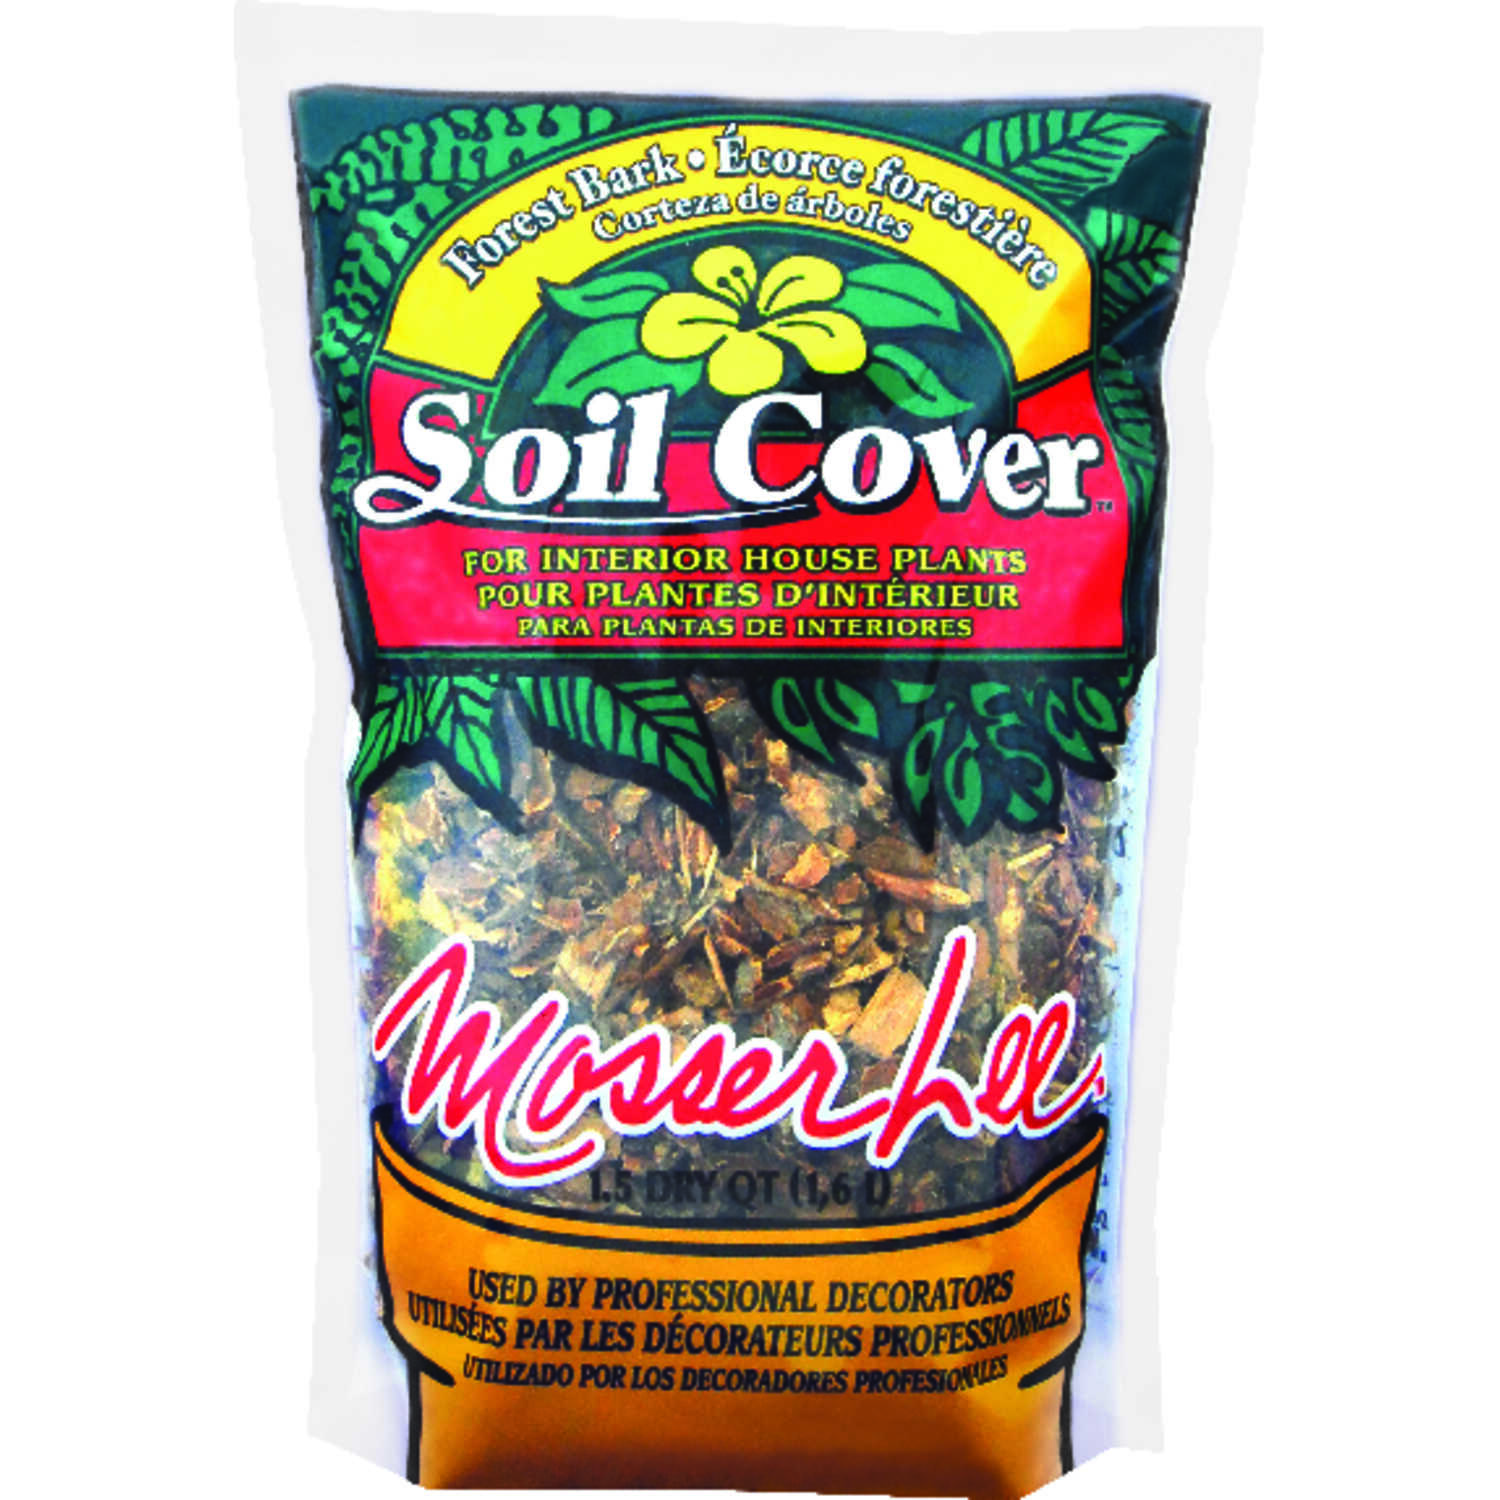 Mosser Lee  Dark Brown  Bark  Decorative Soil Cover